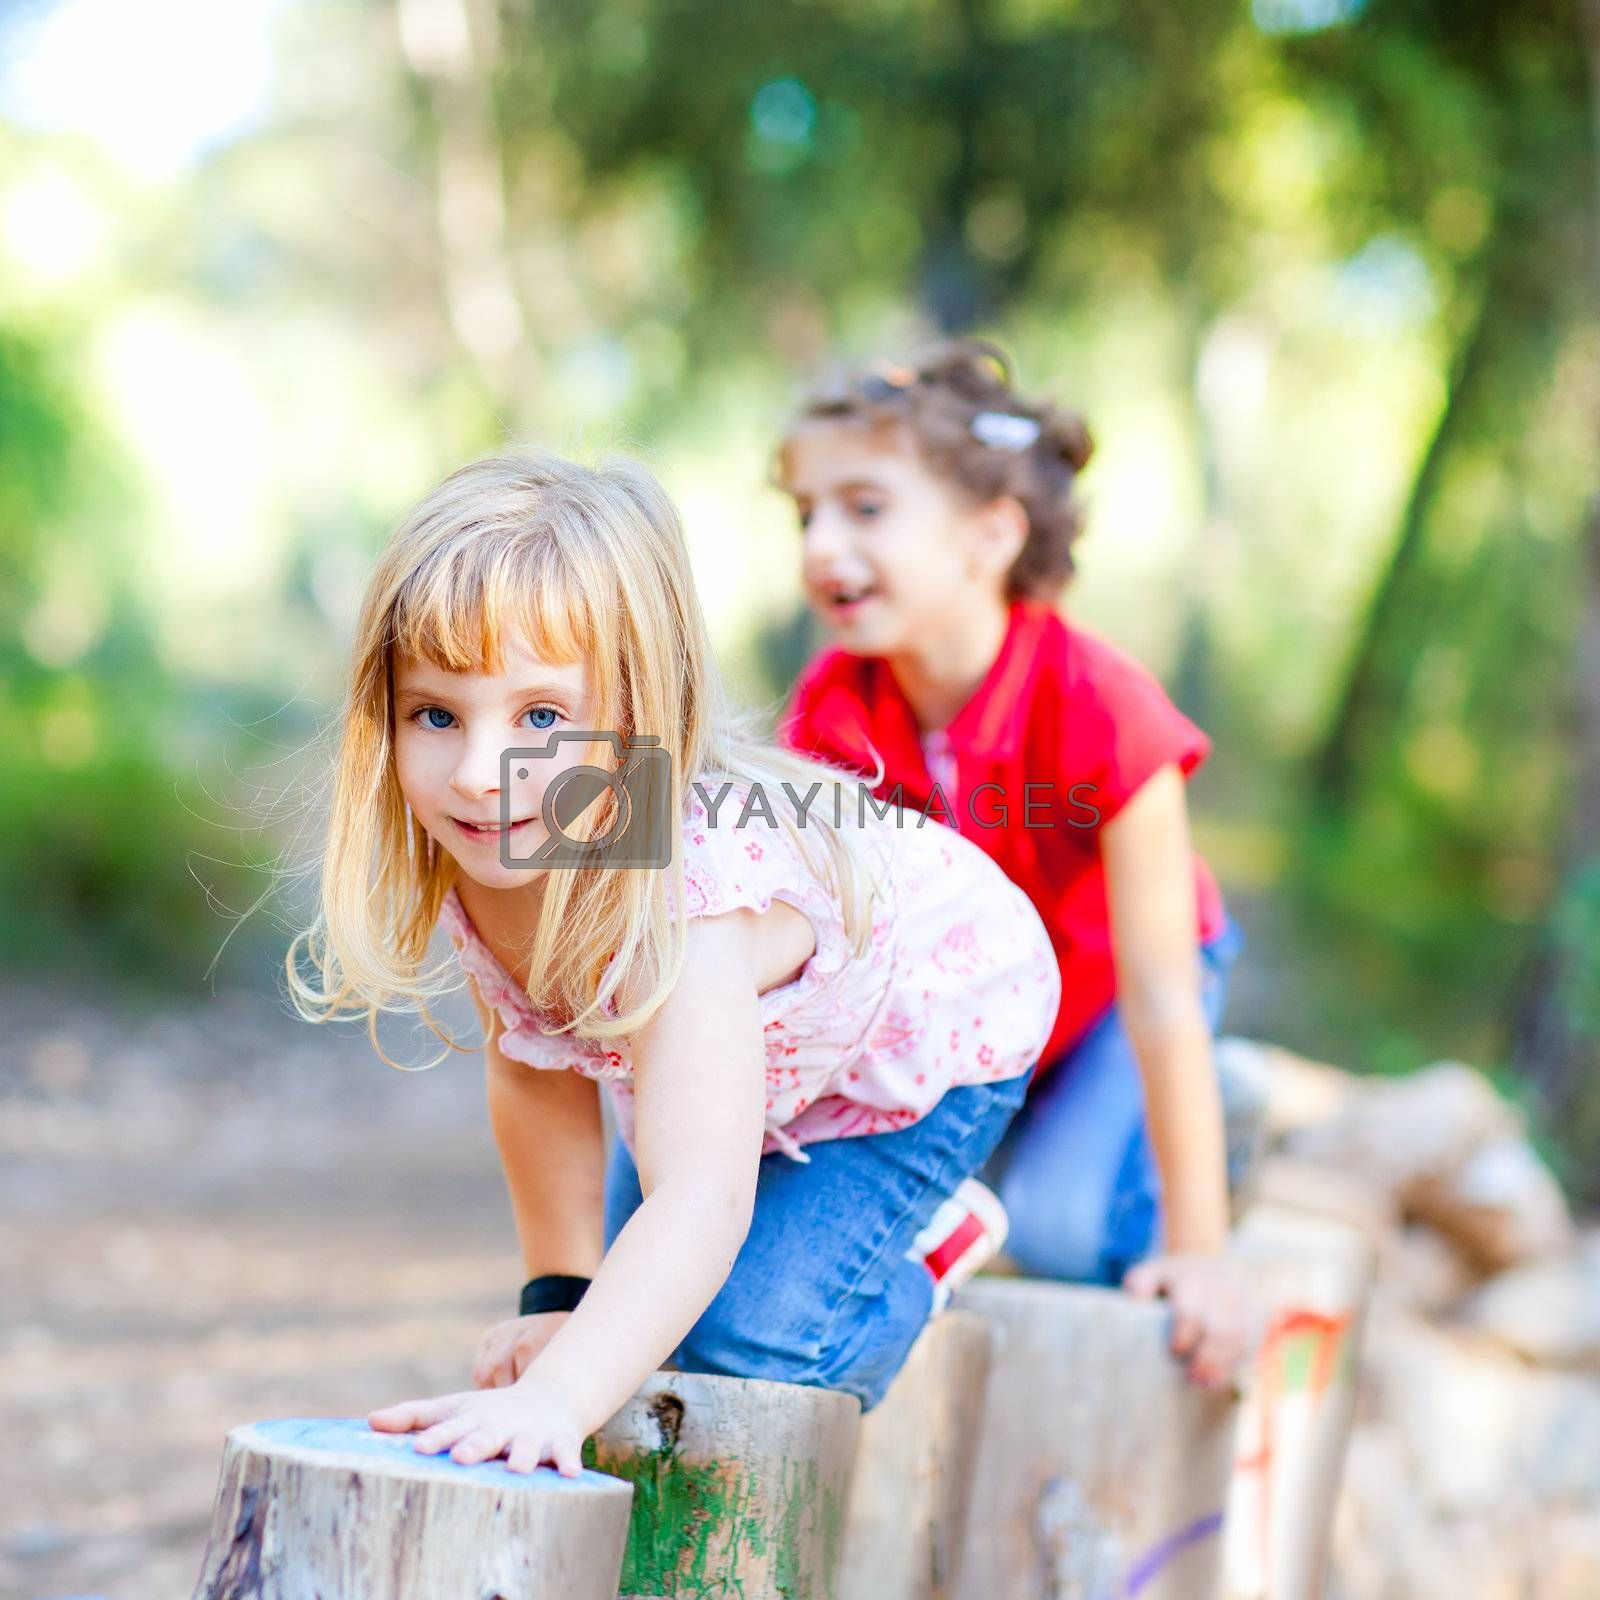 kid girls playing on trunks knee walking in forest nature